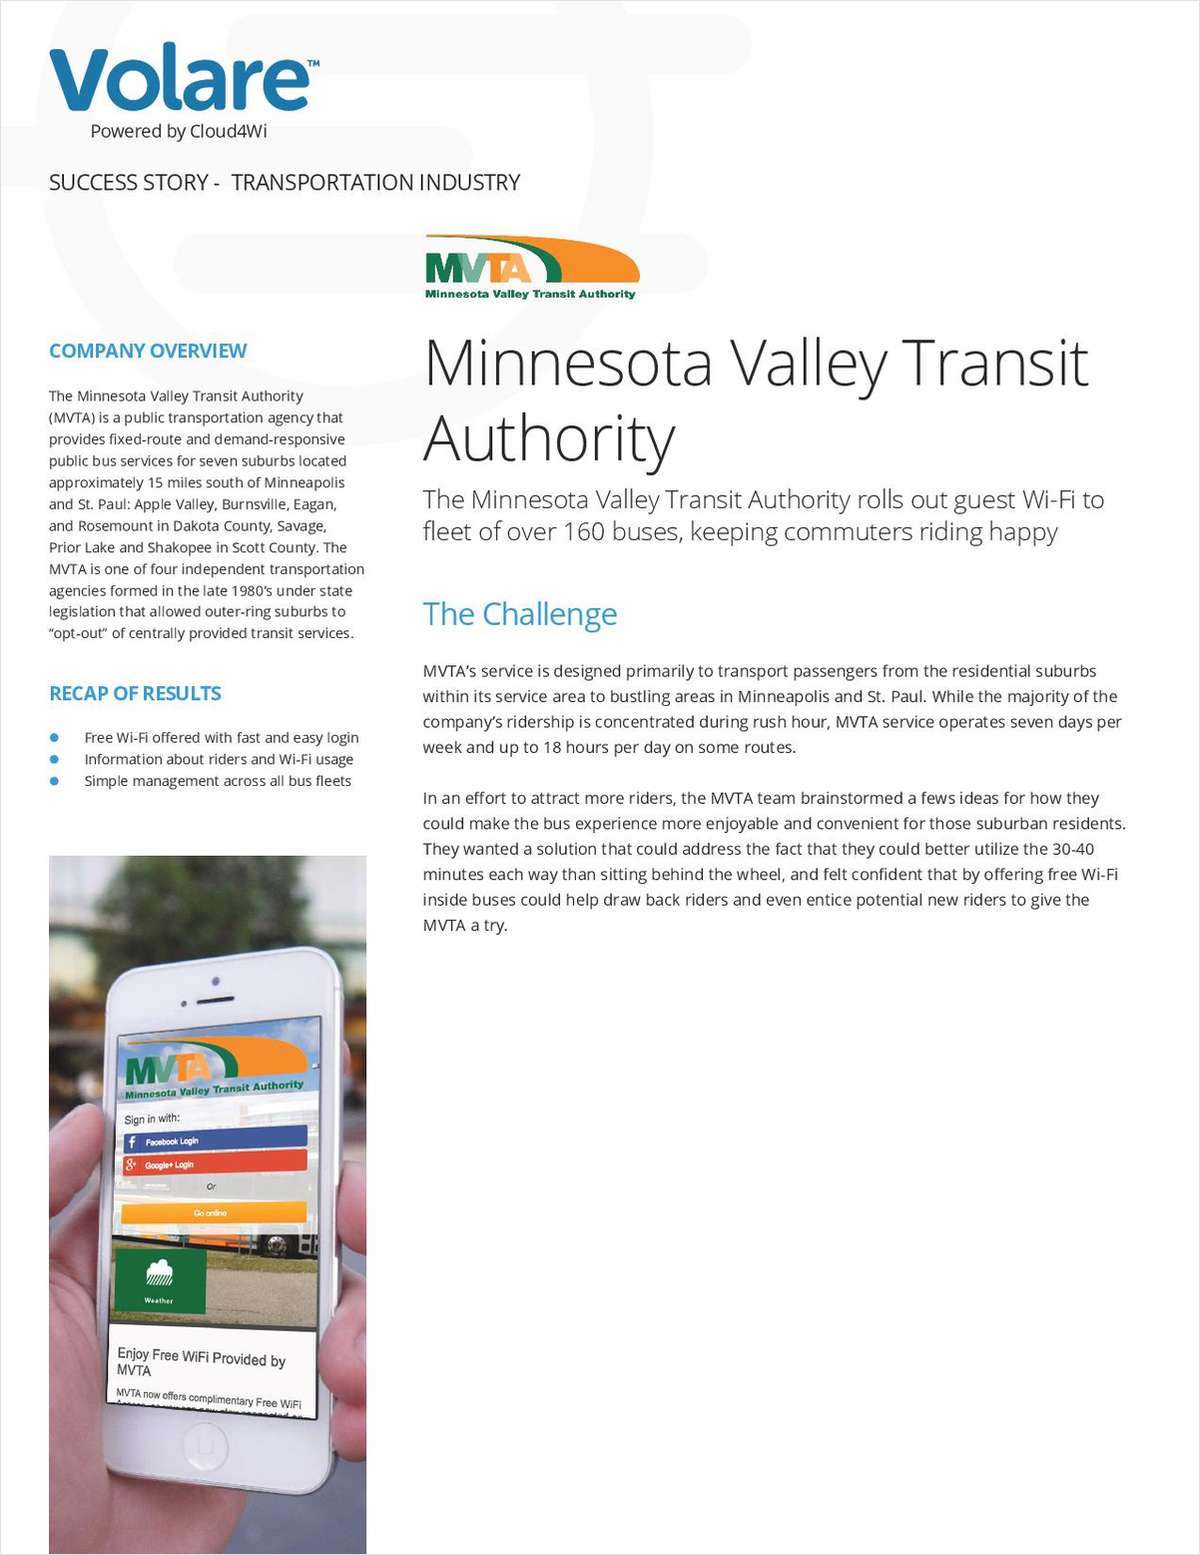 WiFi On-the-Go: MVTA Success Story